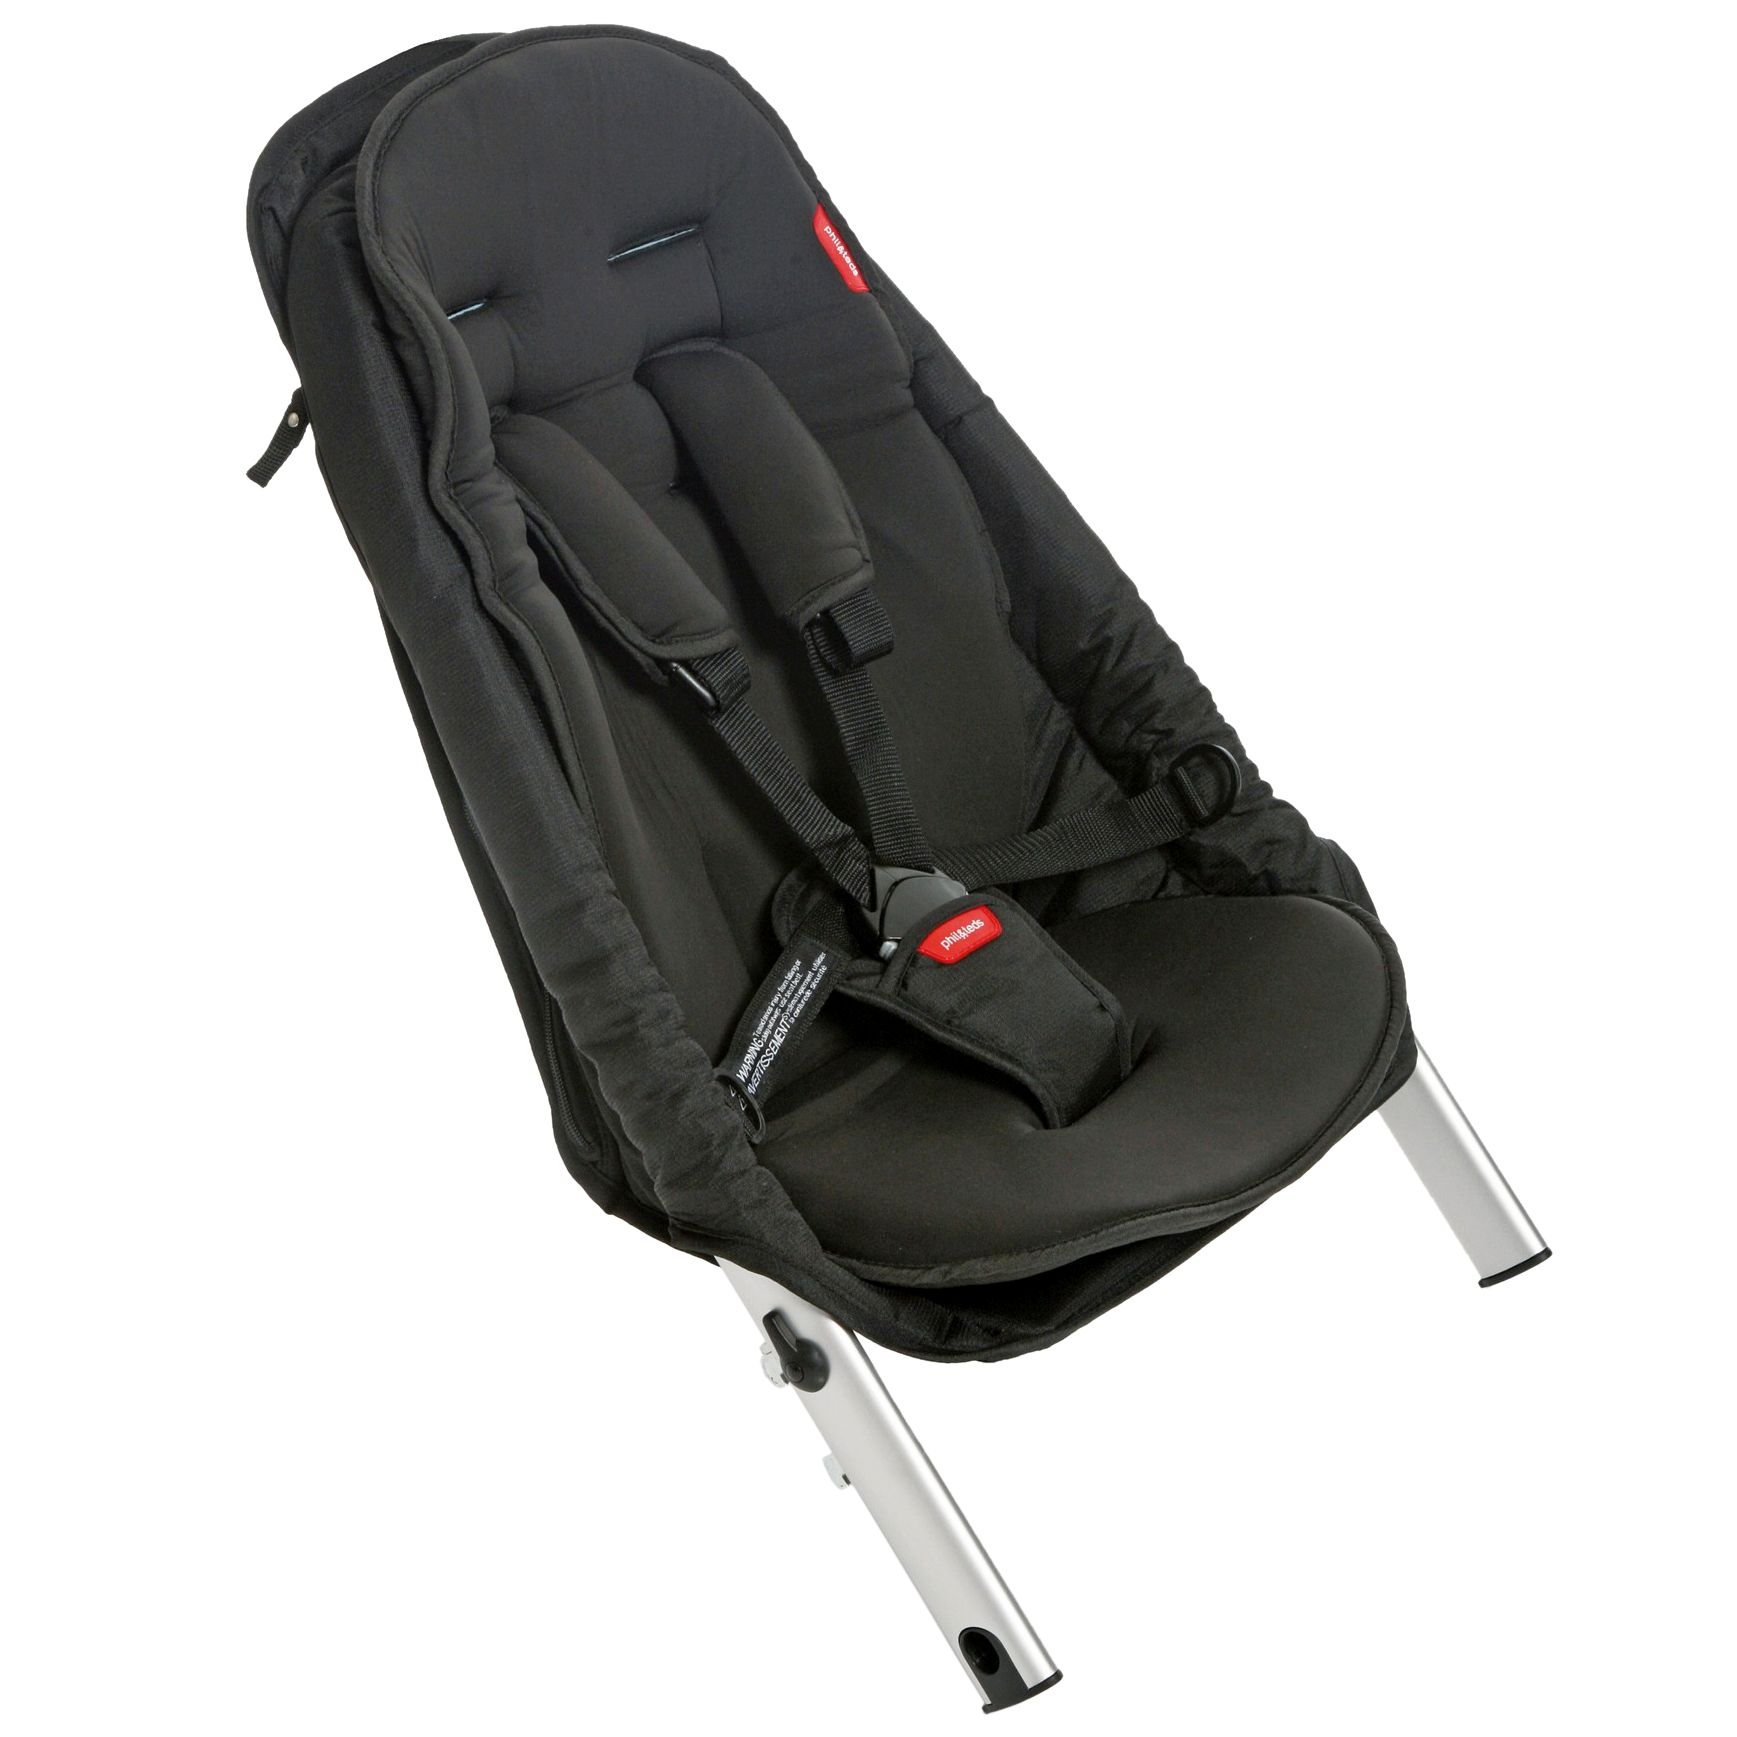 baby car seats phil and teds phil and teds car seat adaptor. Black Bedroom Furniture Sets. Home Design Ideas